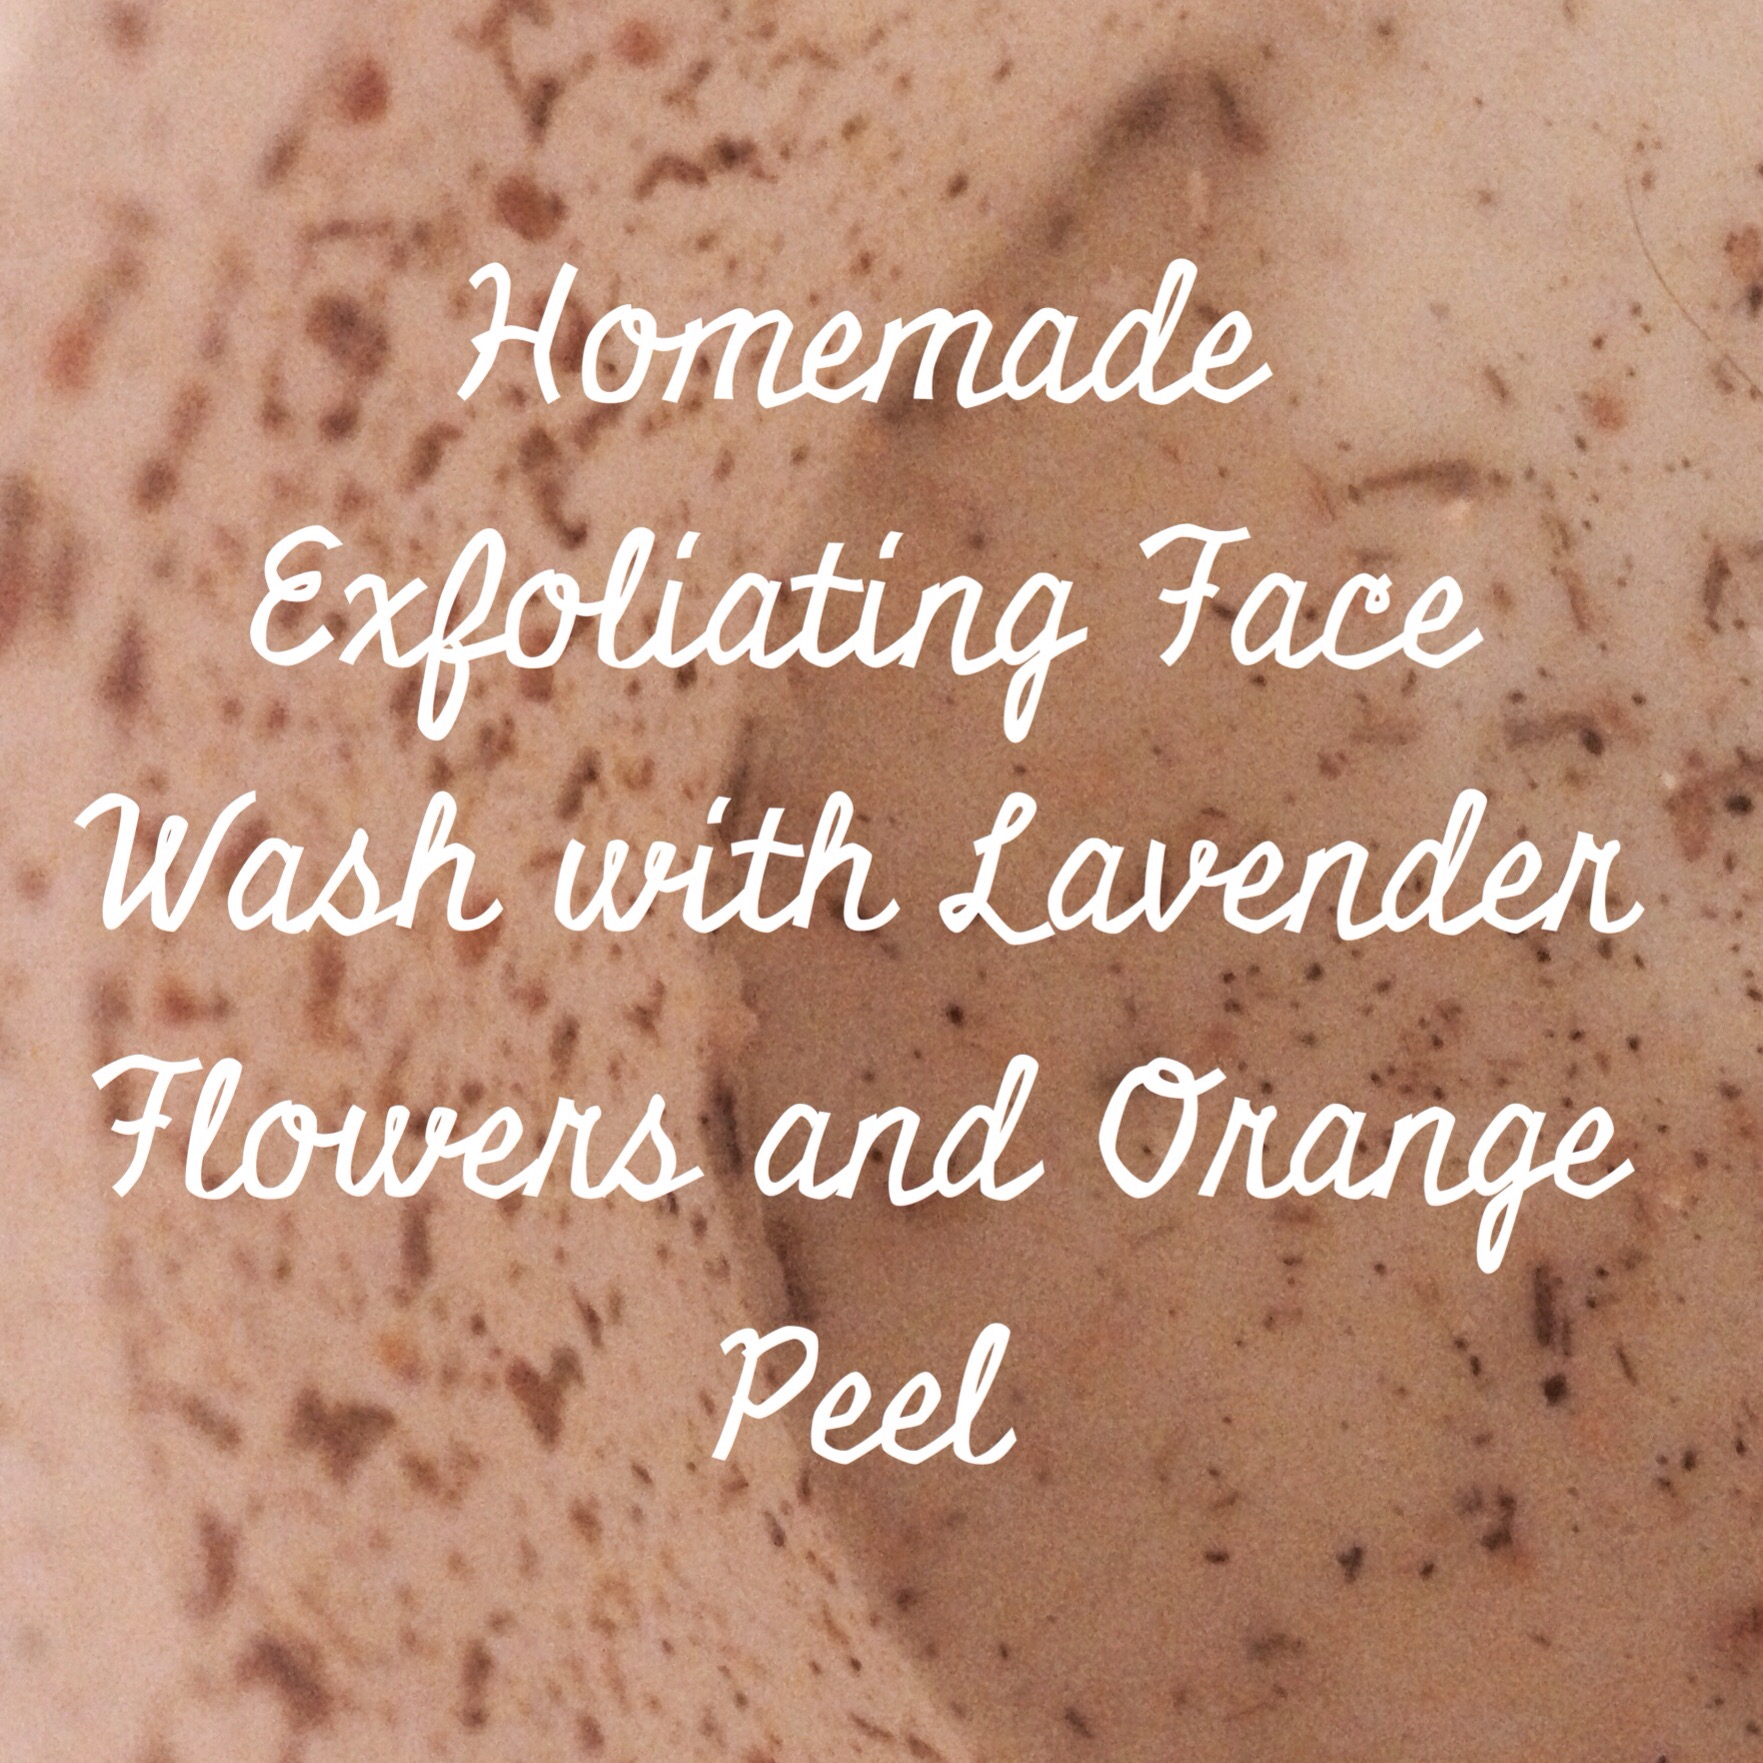 Homemade Exfoliating Face Wash